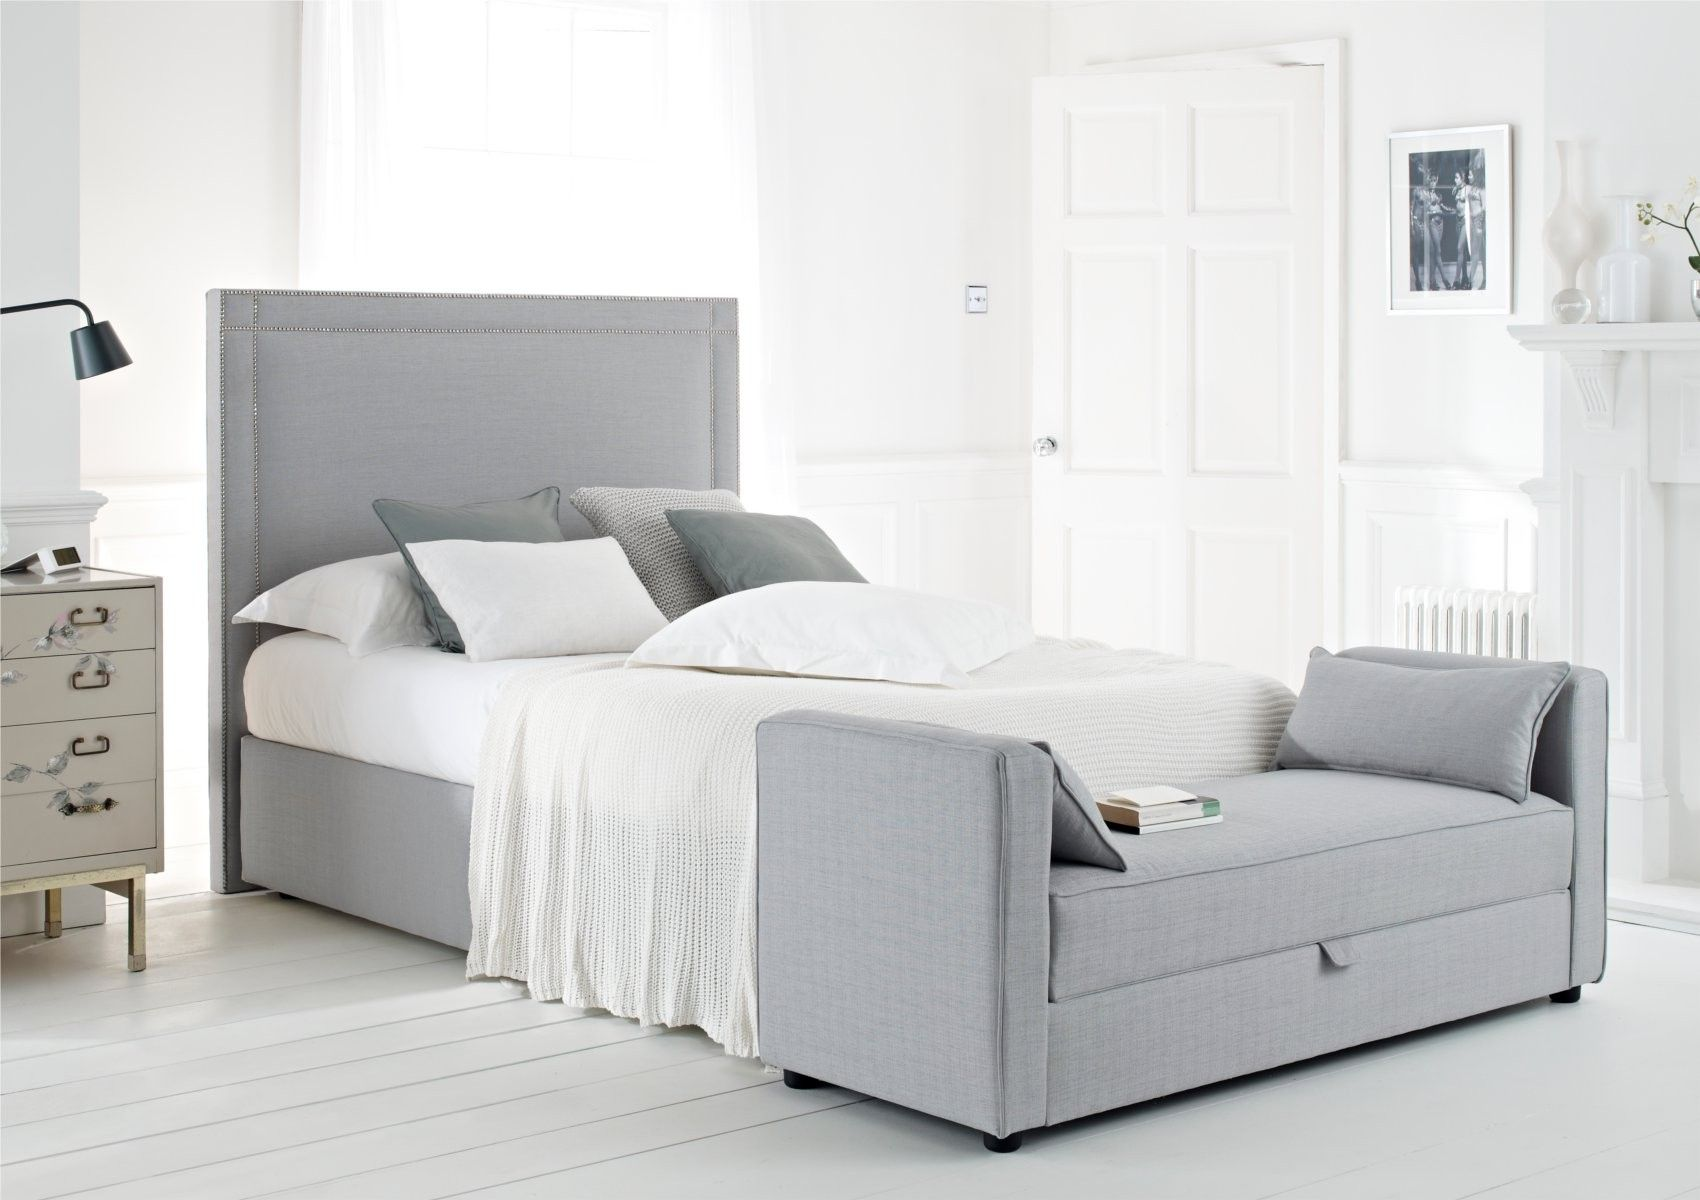 Statuette Of End Of Bed Benches Extra Storage And Beauty